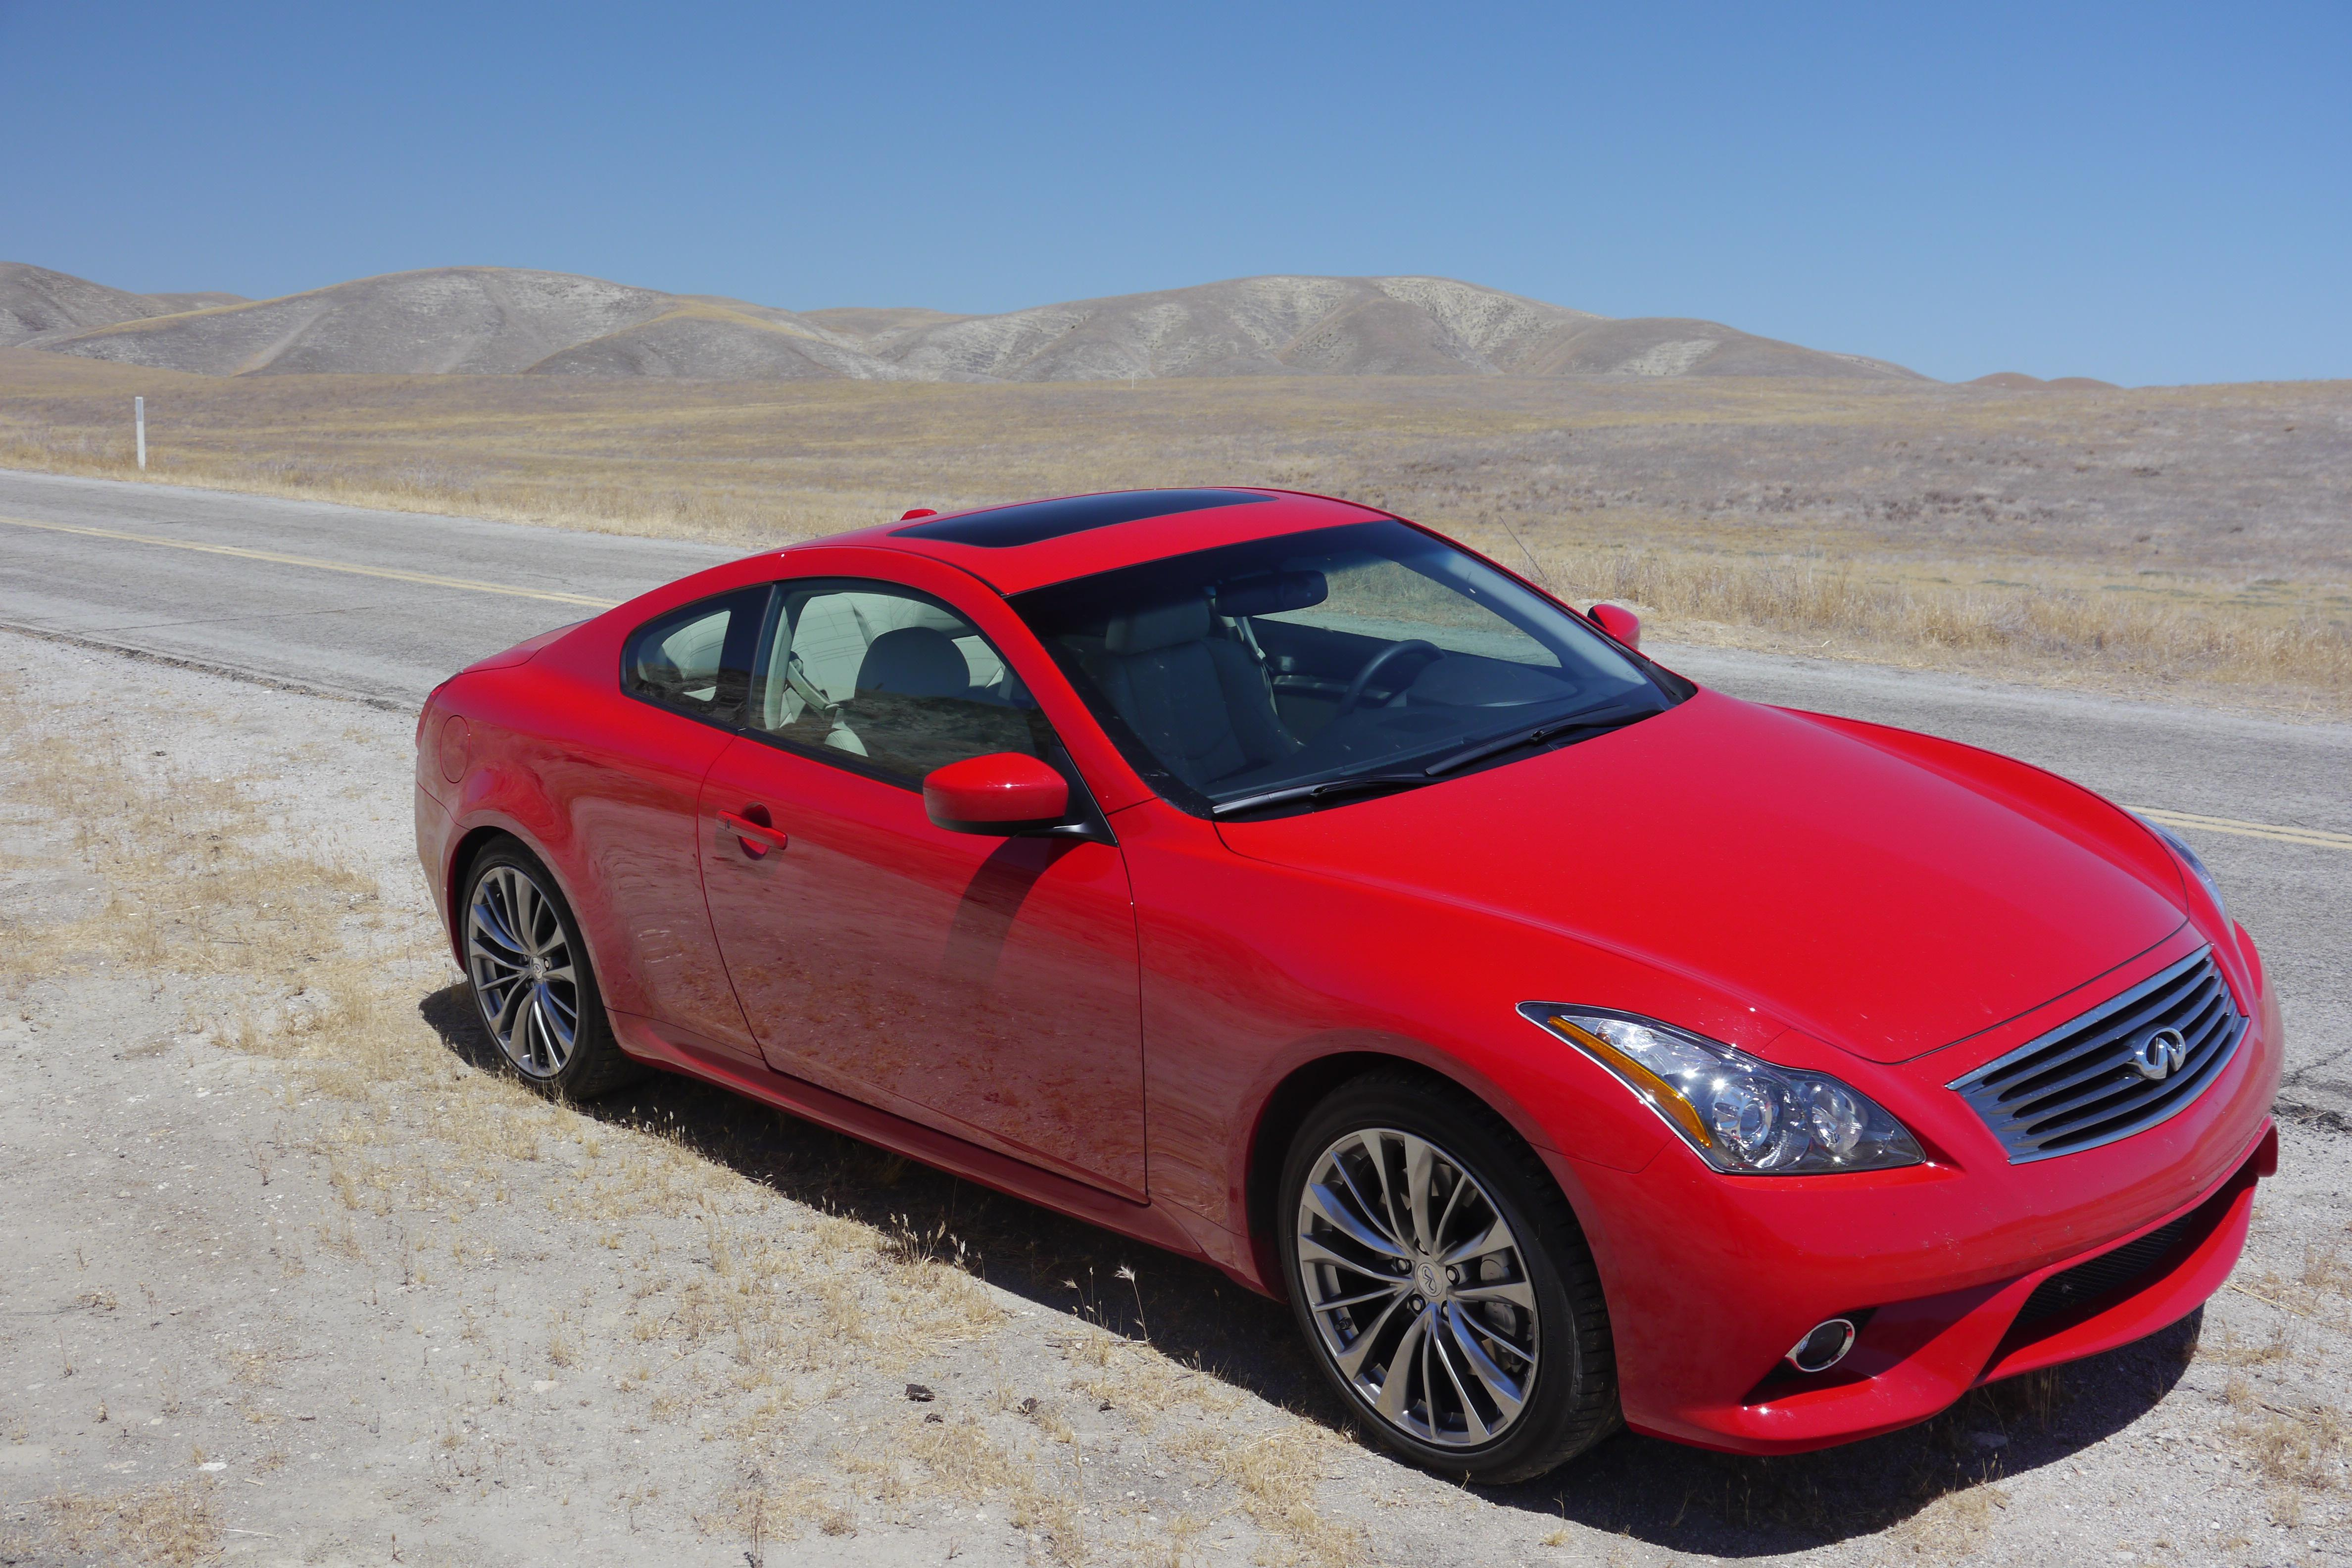 2014 infiniti g37 coupe pictures information and specs auto. Black Bedroom Furniture Sets. Home Design Ideas